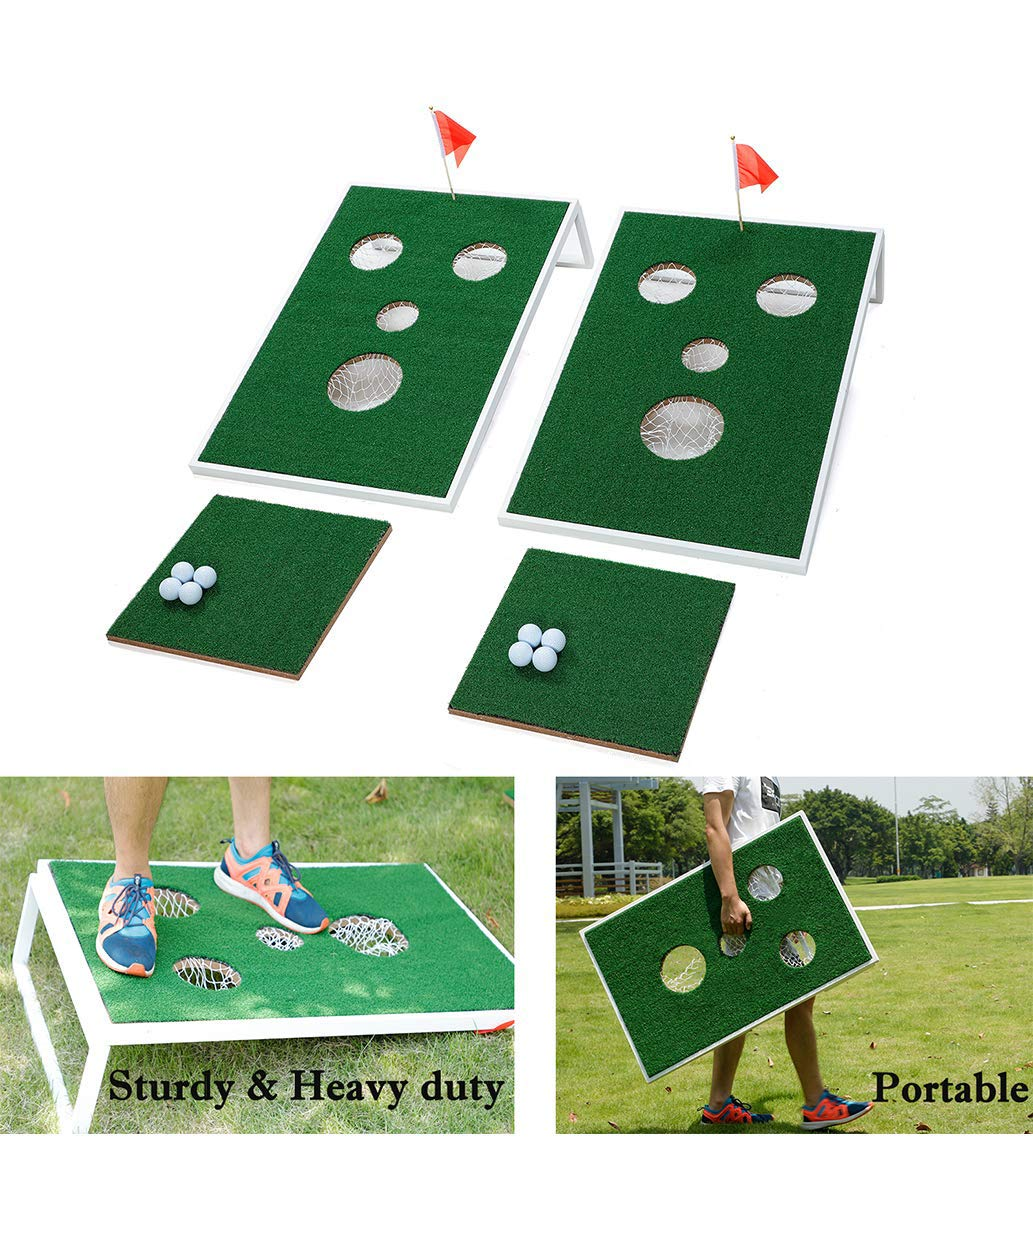 SPRAWL Golf Cornhole Game Set Chipping Boards Golf Sports Game Golf Chip Shot Practice Training for Indoor Outdoor Perfect Christmas Thanksgiving Gift Ideas